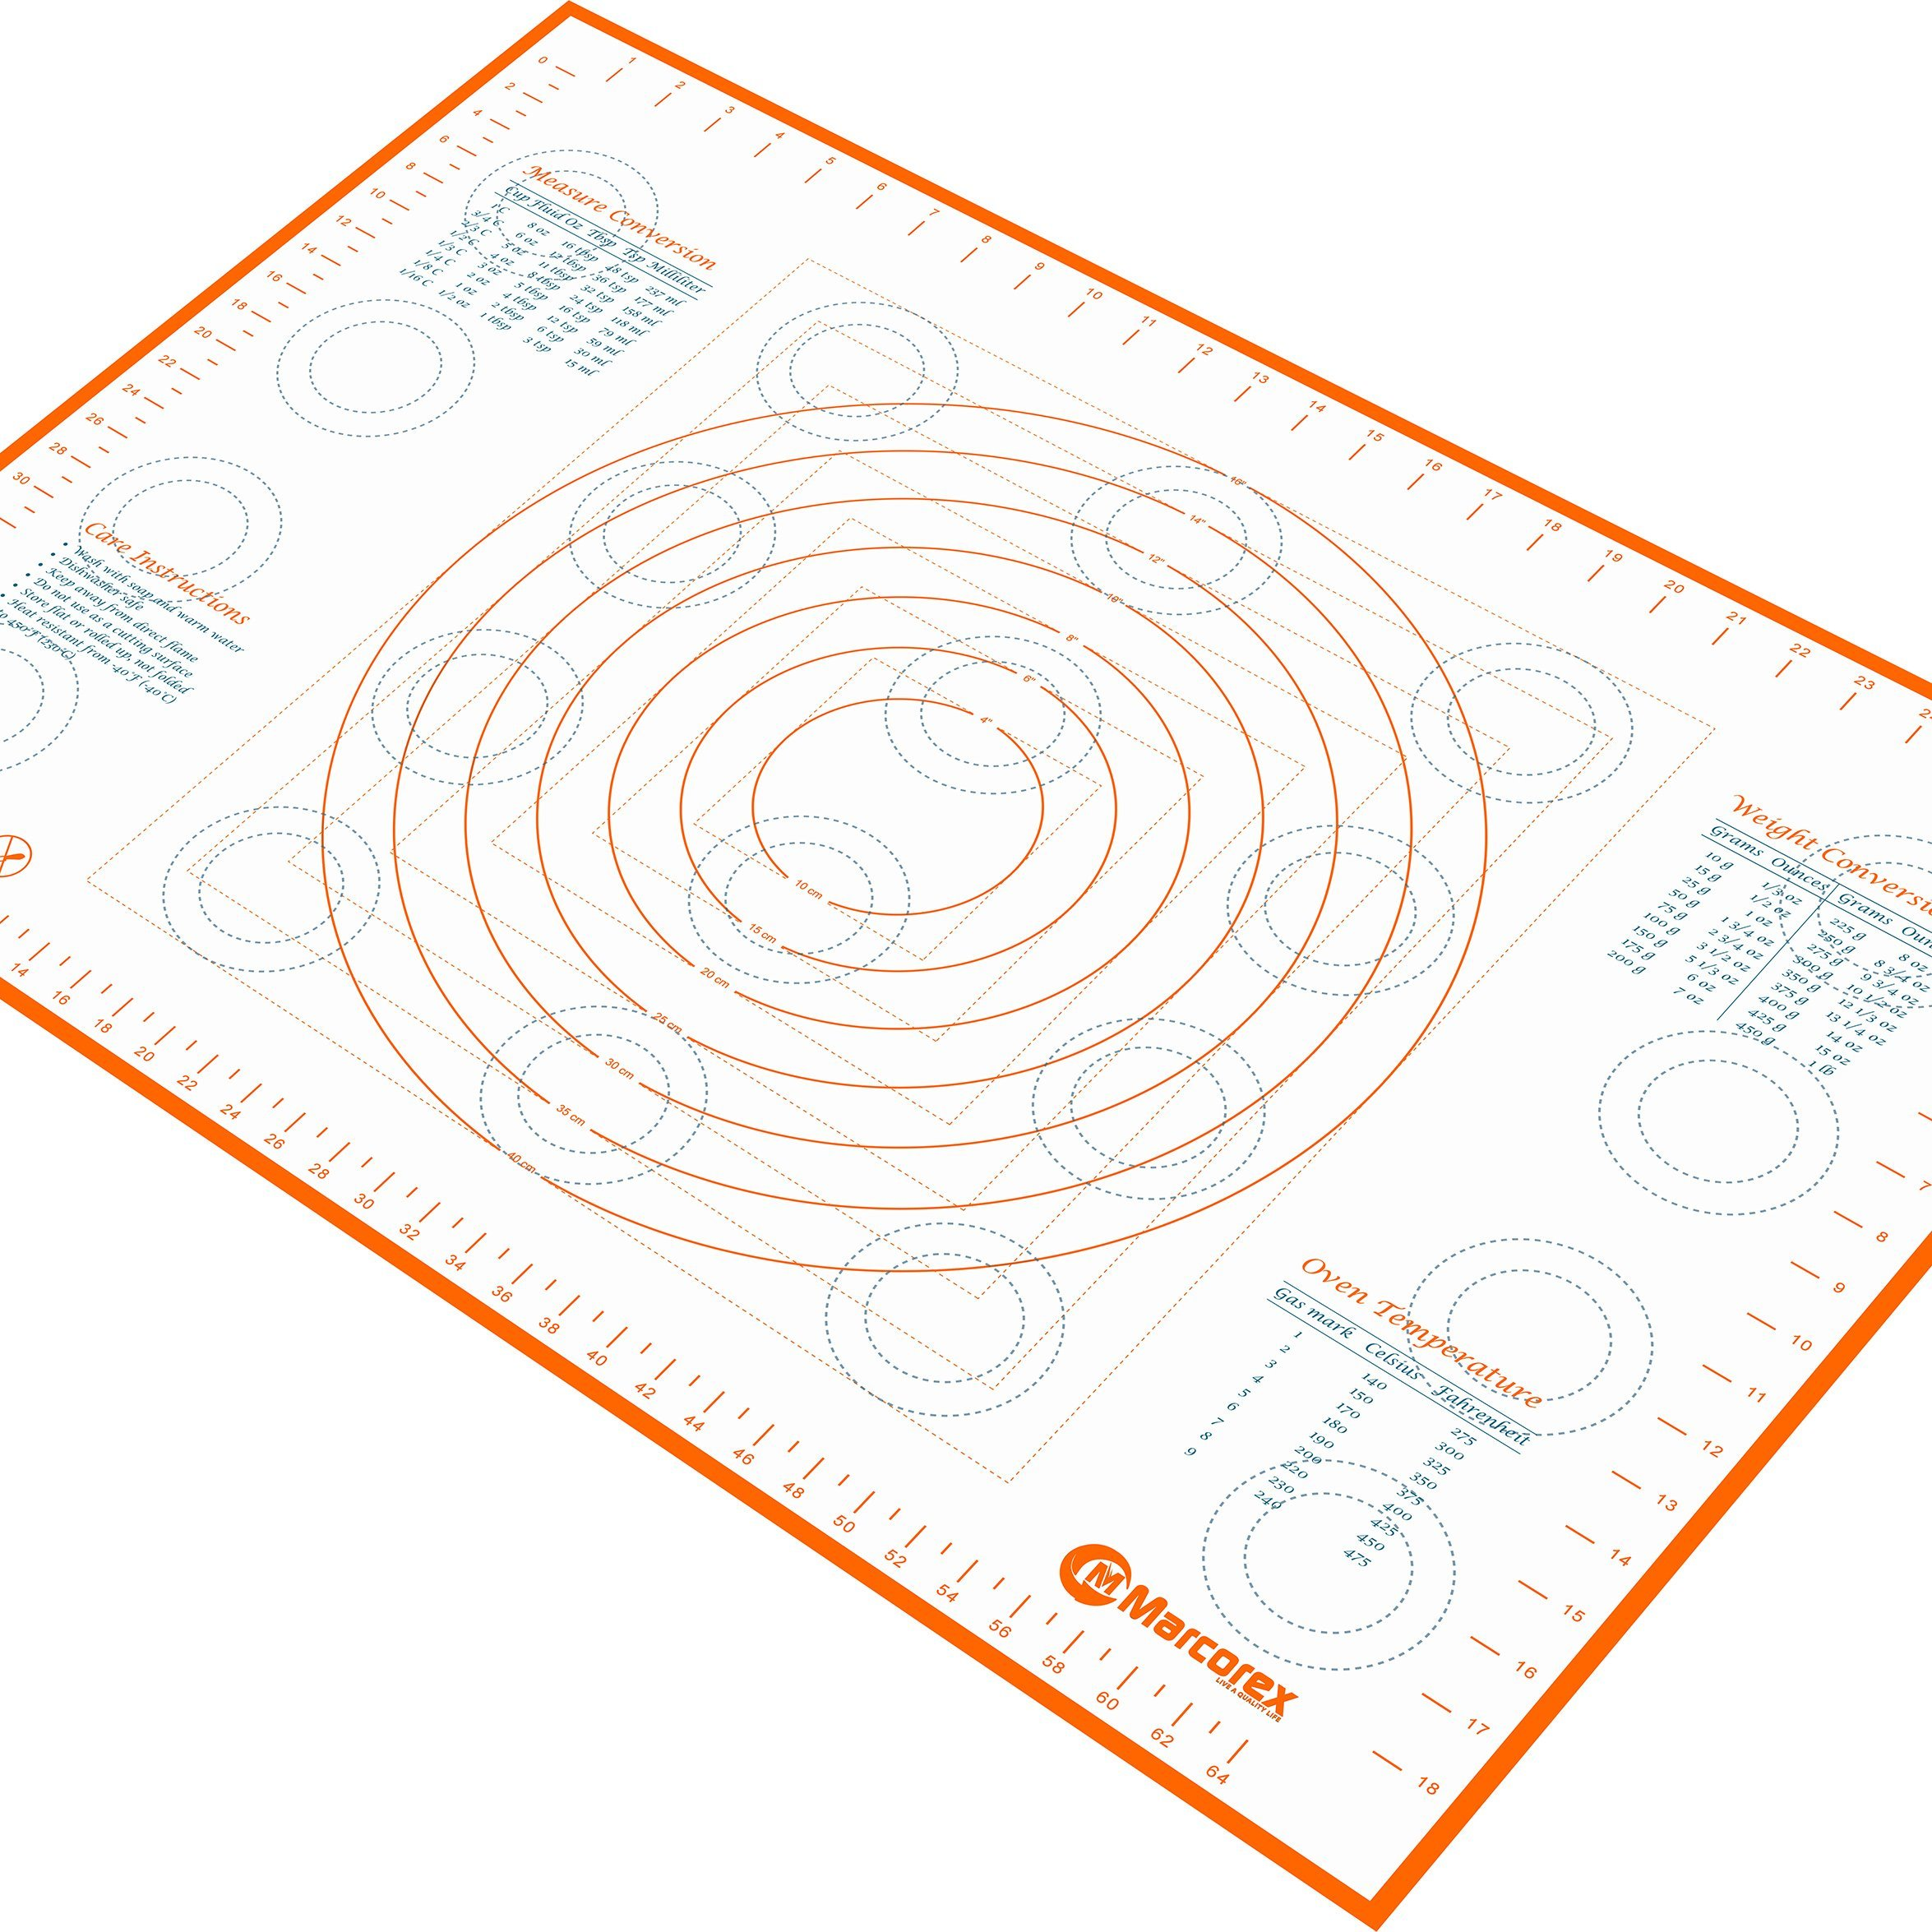 Extra Large Silicone Pastry Mat with Measurements and Conversion Charts, 29.6'' x 20.5'' Non-Stick Non-Slip, XL Fondant Mat for Rolling Dough